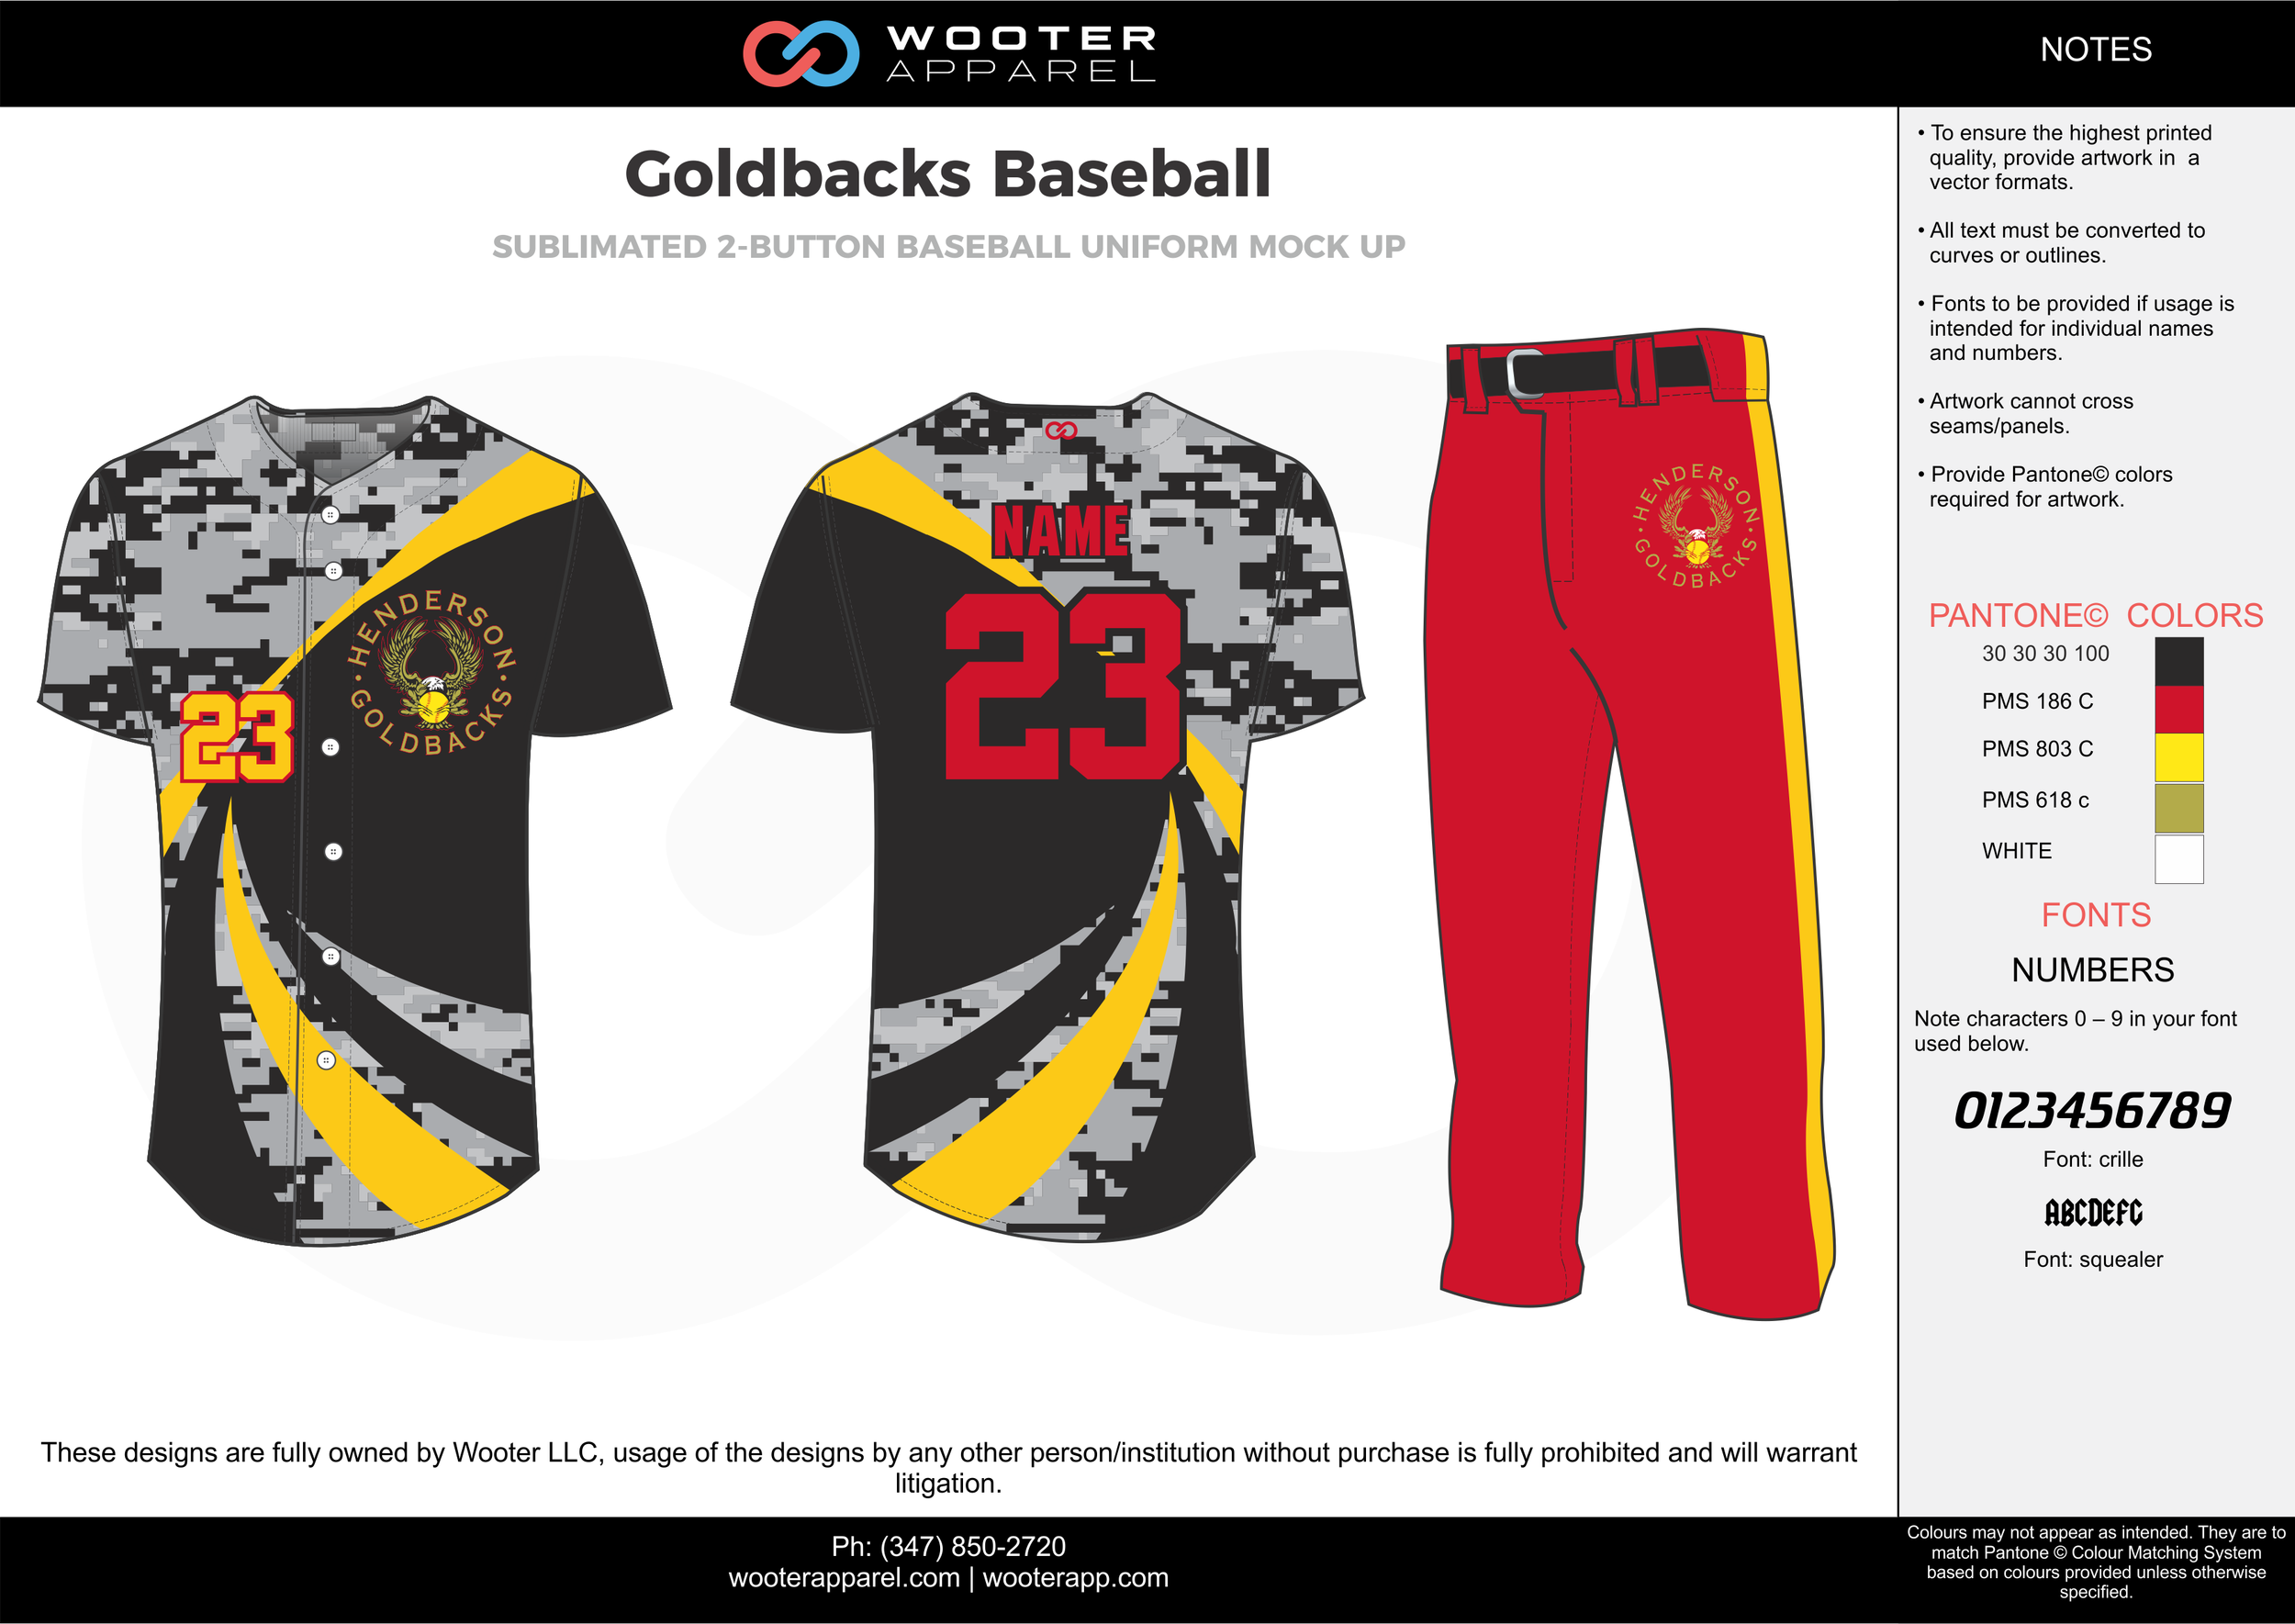 GOLDBACKS BASEBALL black red yellow gray white baseball uniforms jerseys pants